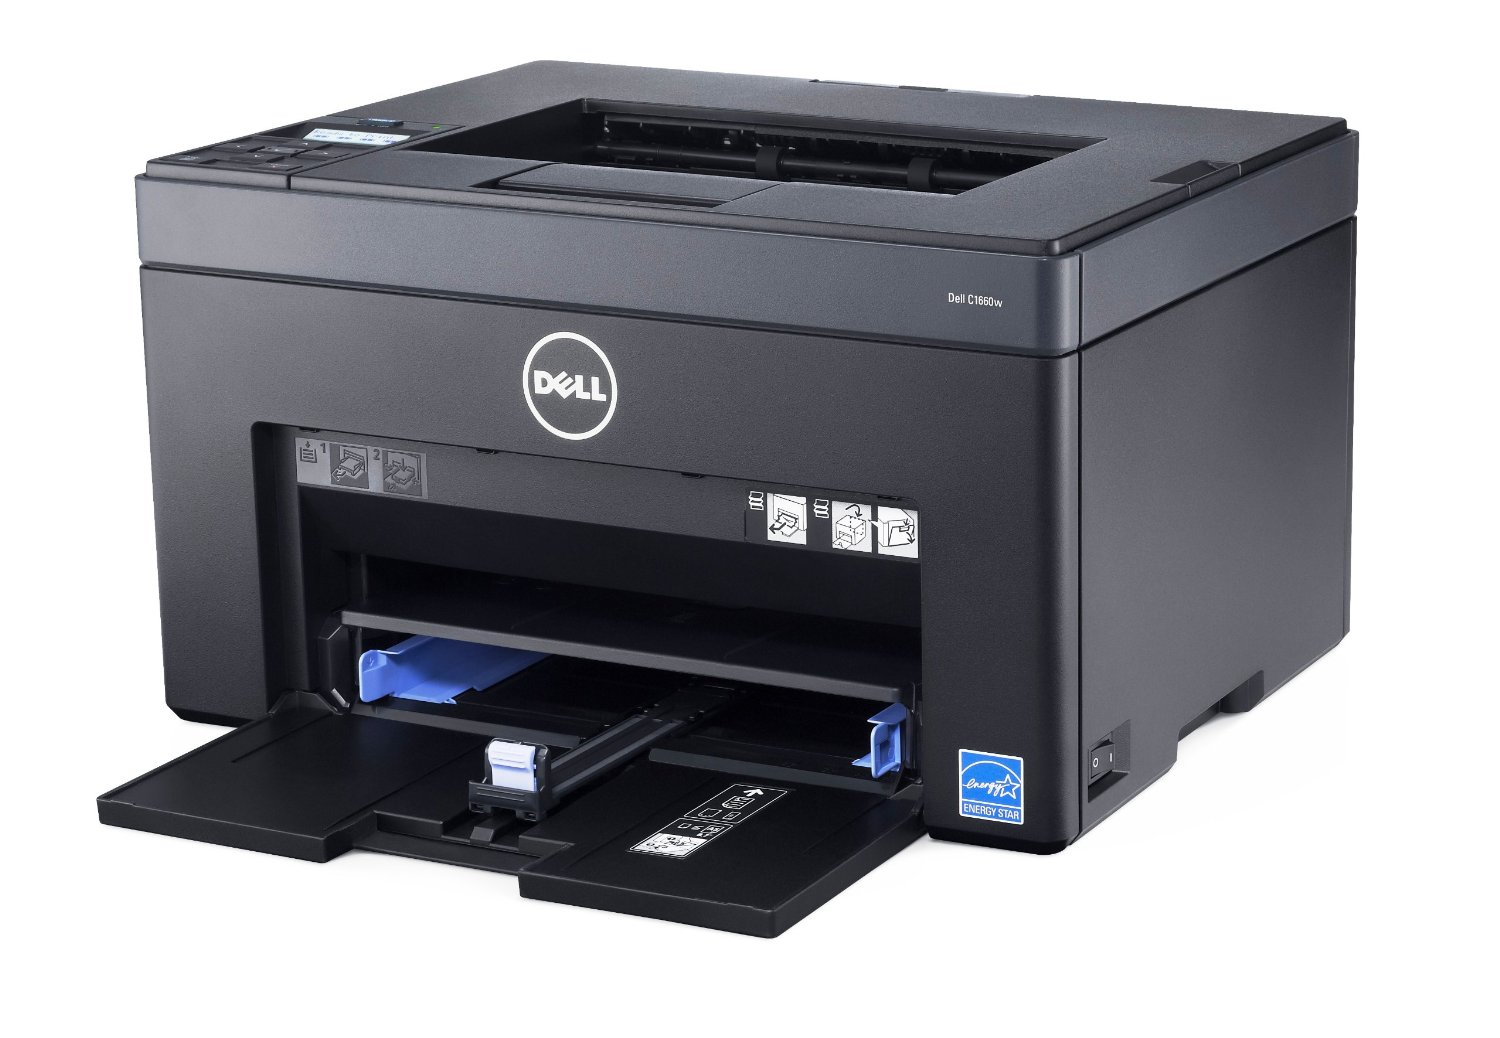 toner dell c1660w pour imprimante laser dell. Black Bedroom Furniture Sets. Home Design Ideas